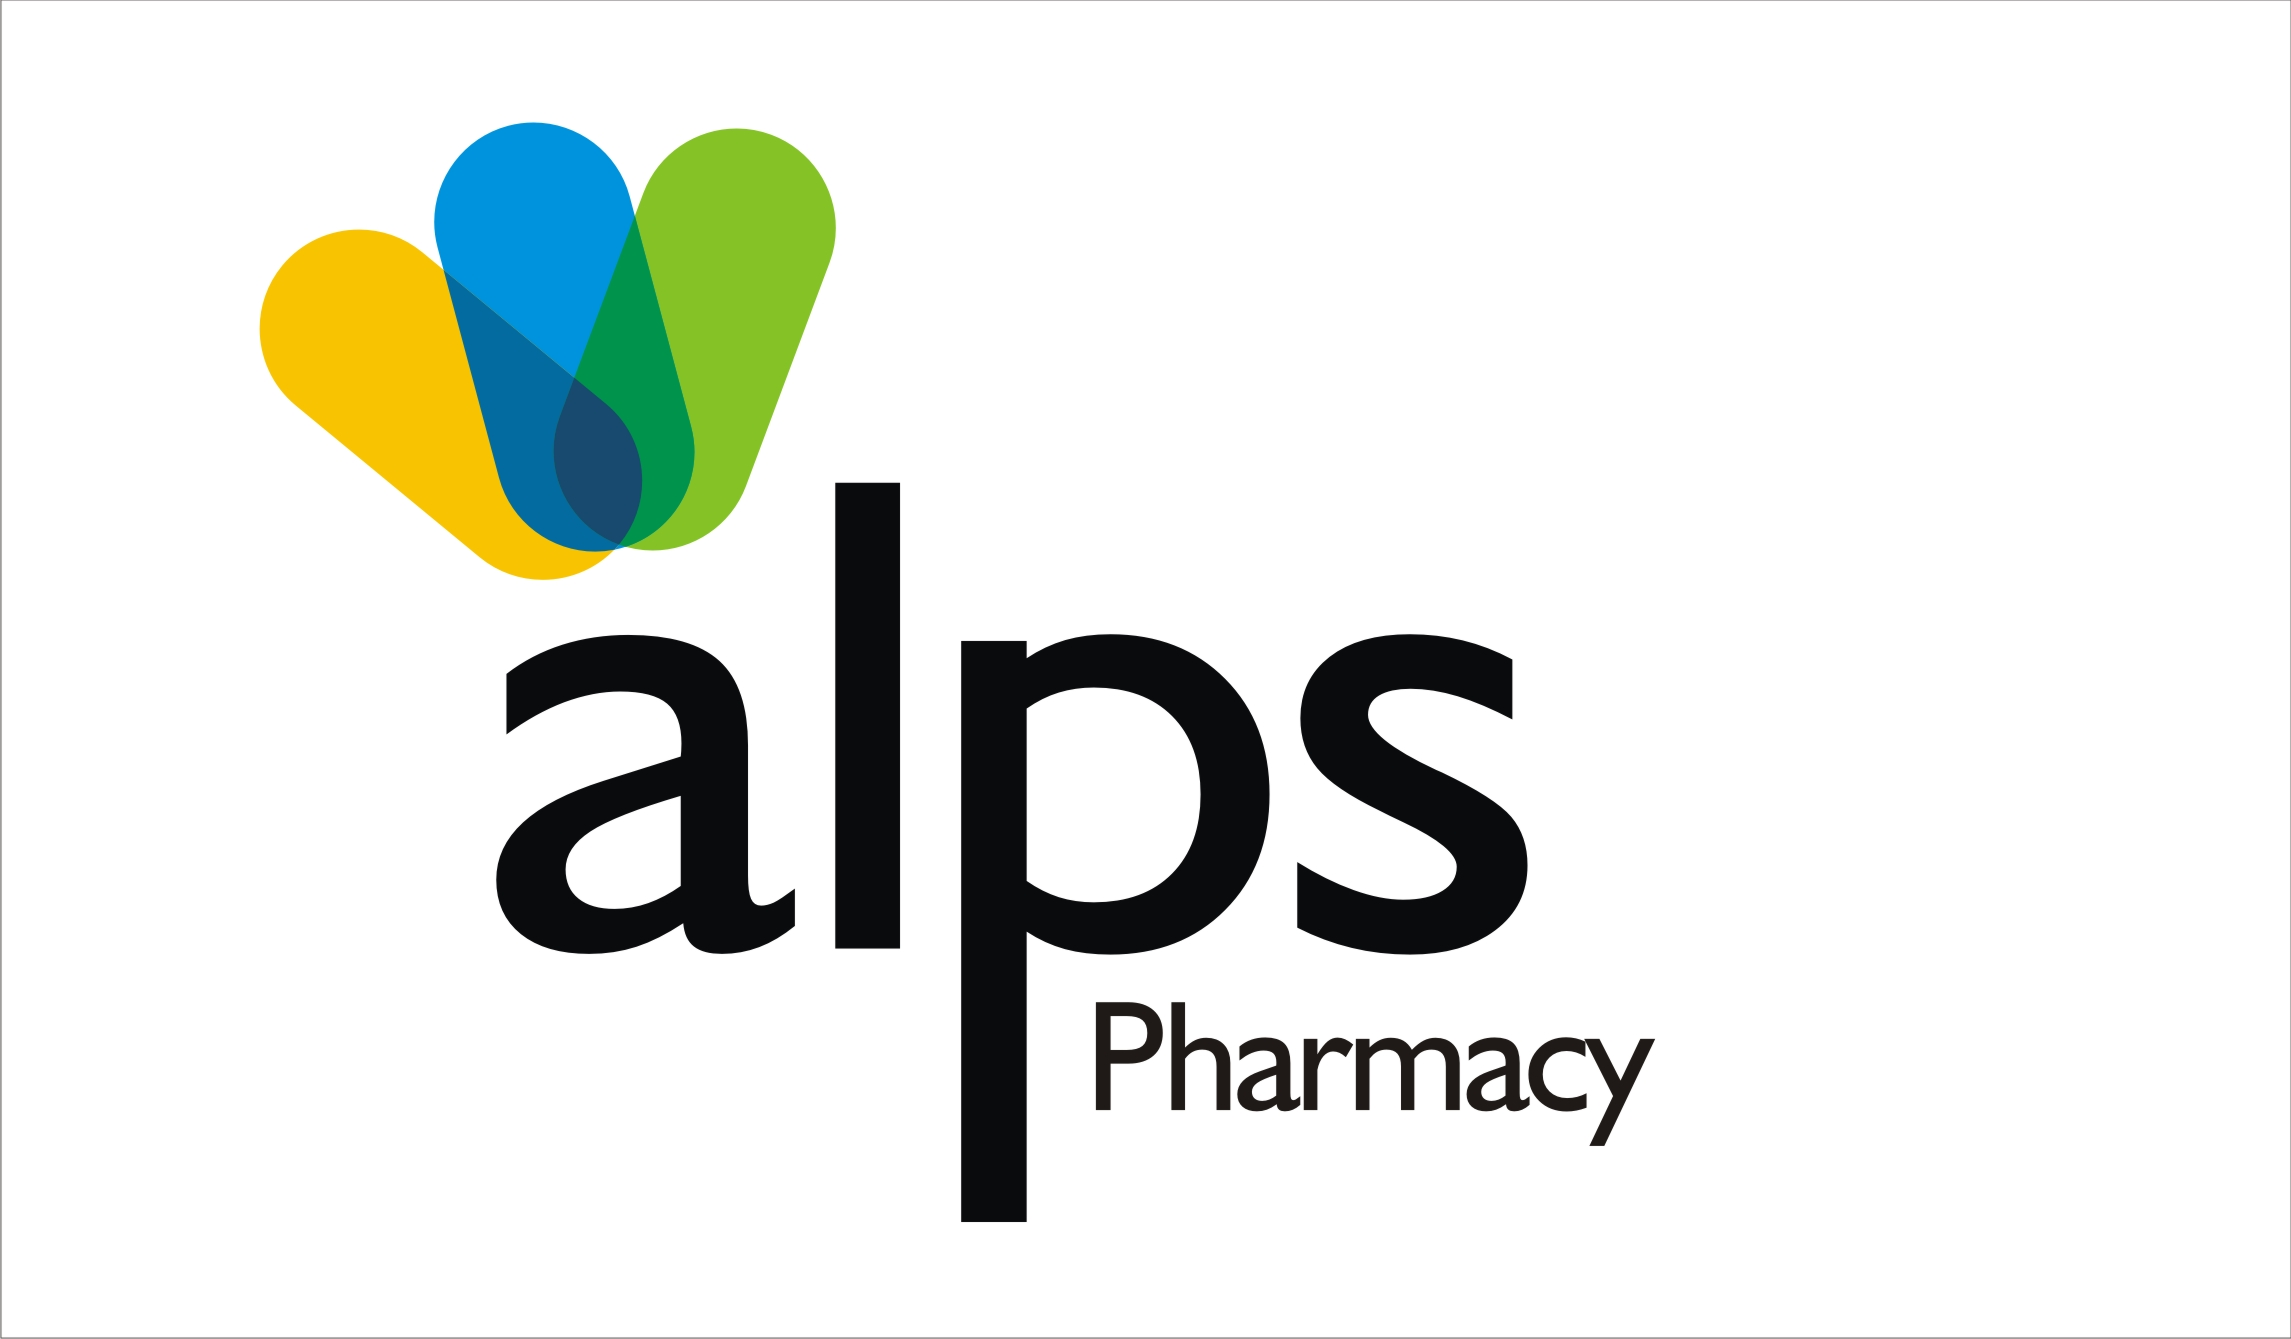 ALPS Pharmacy